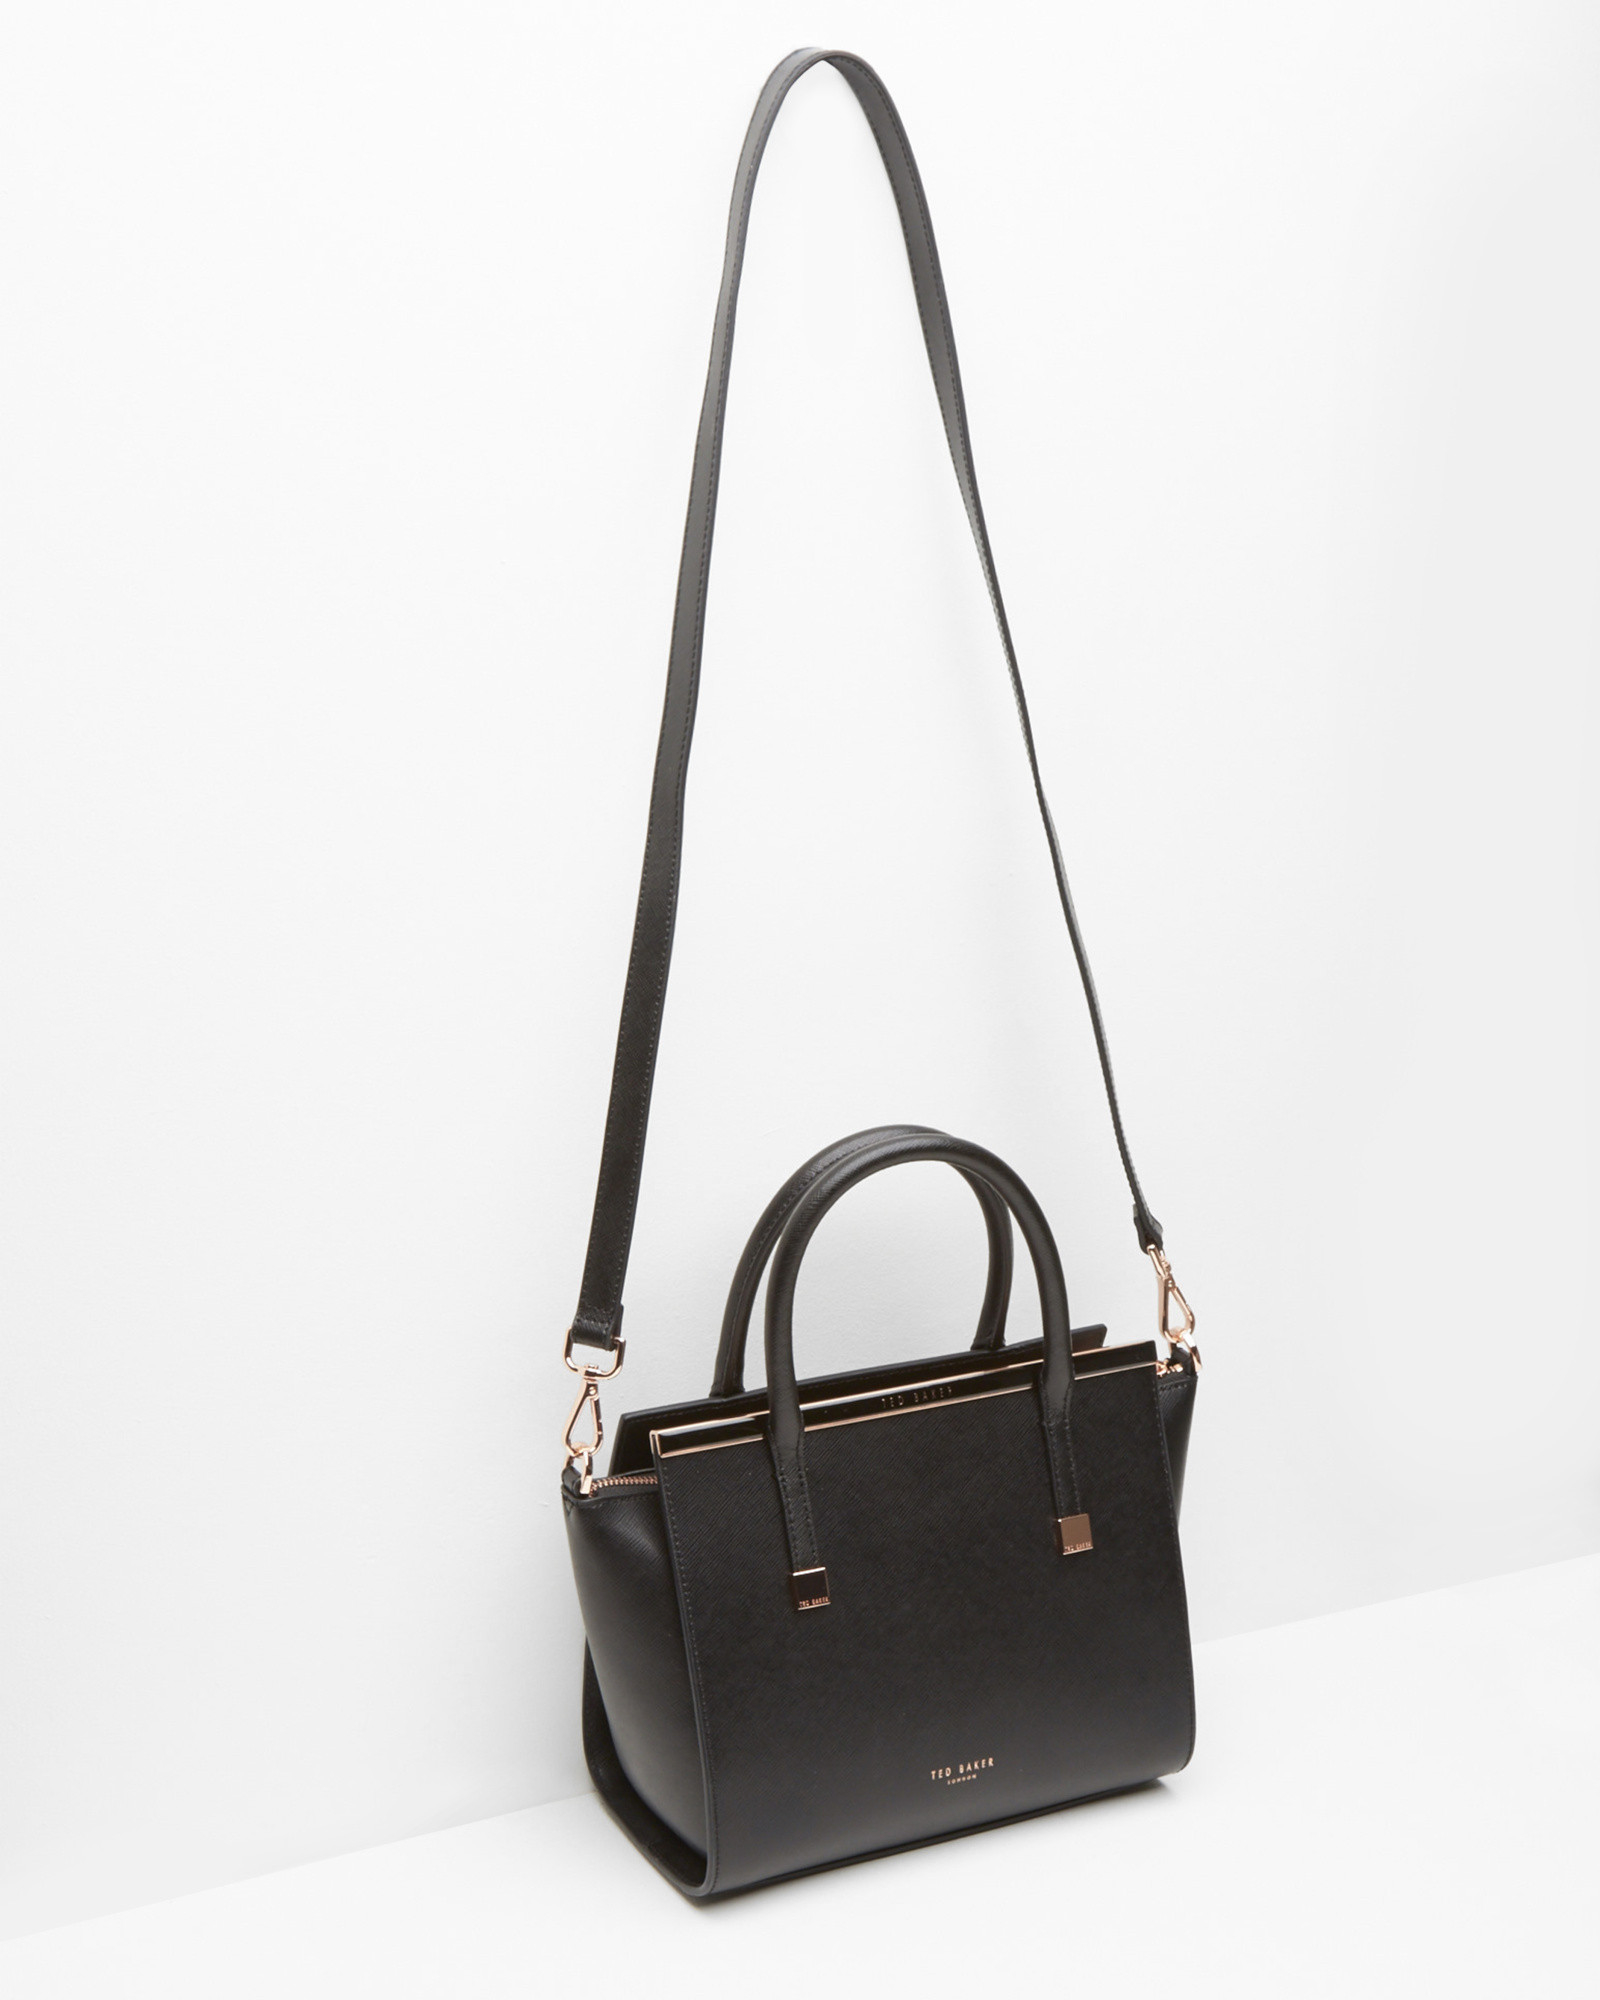 a8ddc994509 Ted Baker Crosshatch Leather Tote Bag in Black - Lyst